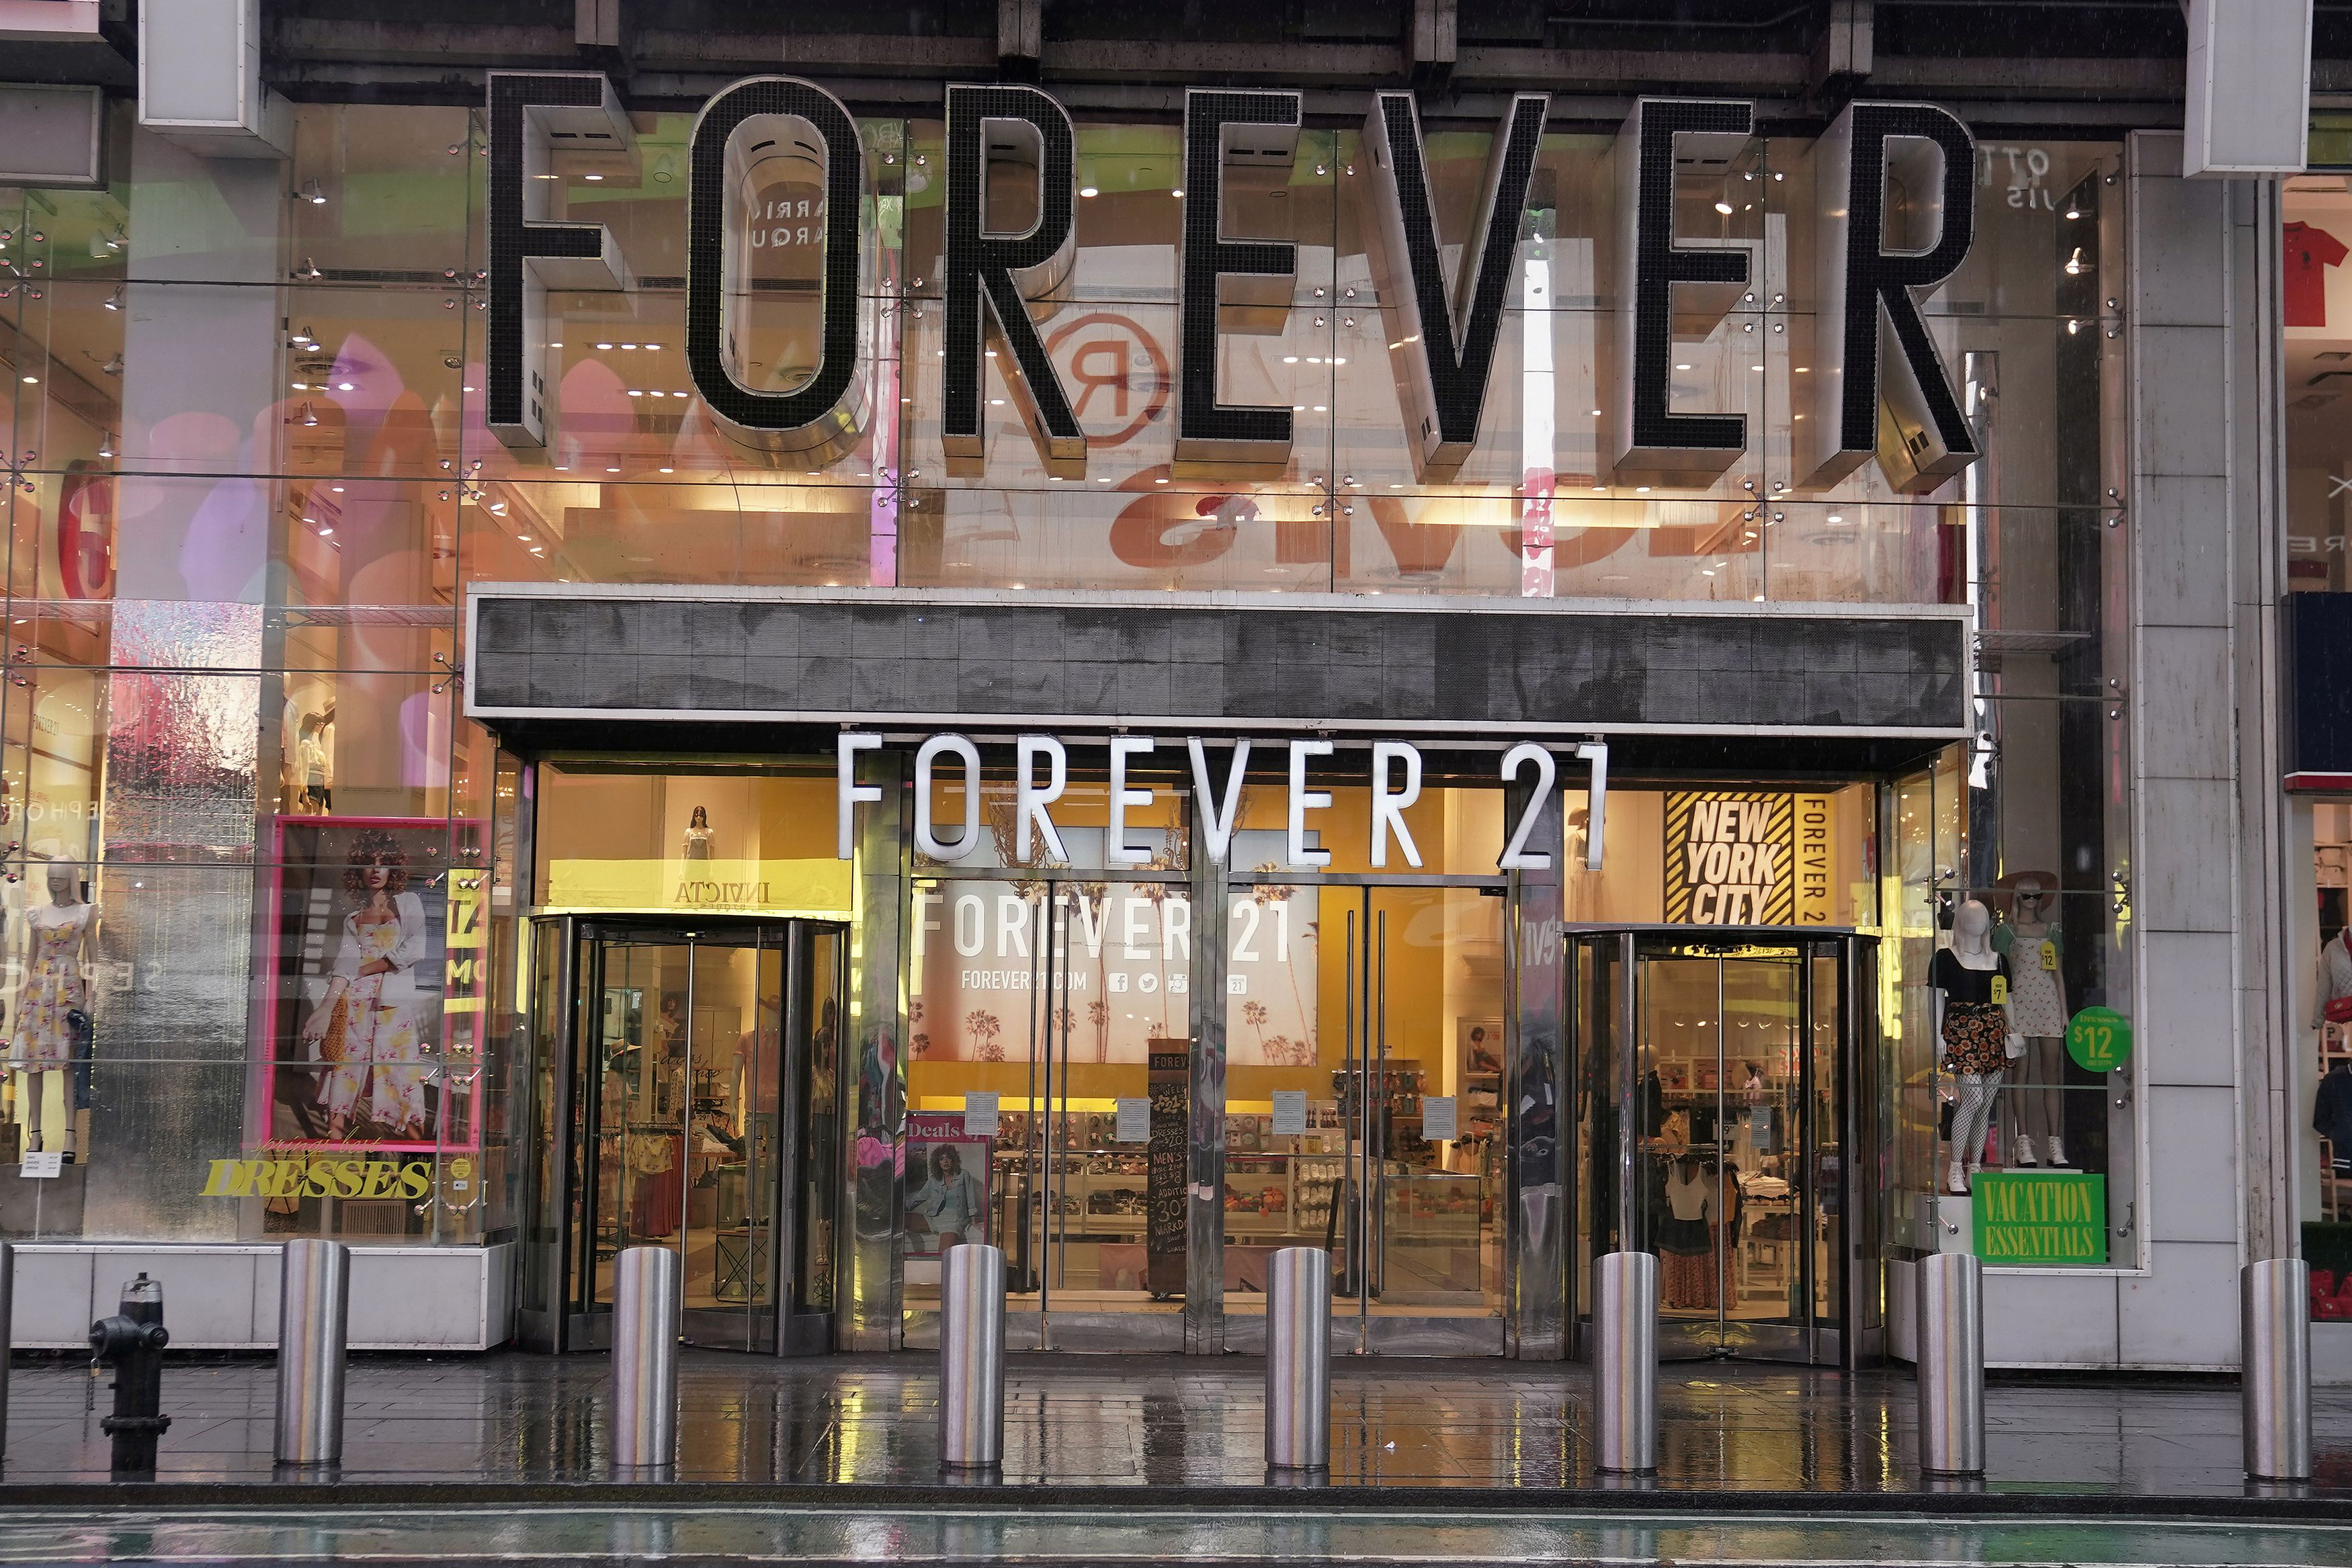 A closed Forever 21 store is pictured in Times Square following the outbreak of Coronavirus disease (COVID-19), in the Manhattan borough of New York City, New York, U.S., March 23, 2020. REUTERS/Carlo Allegri